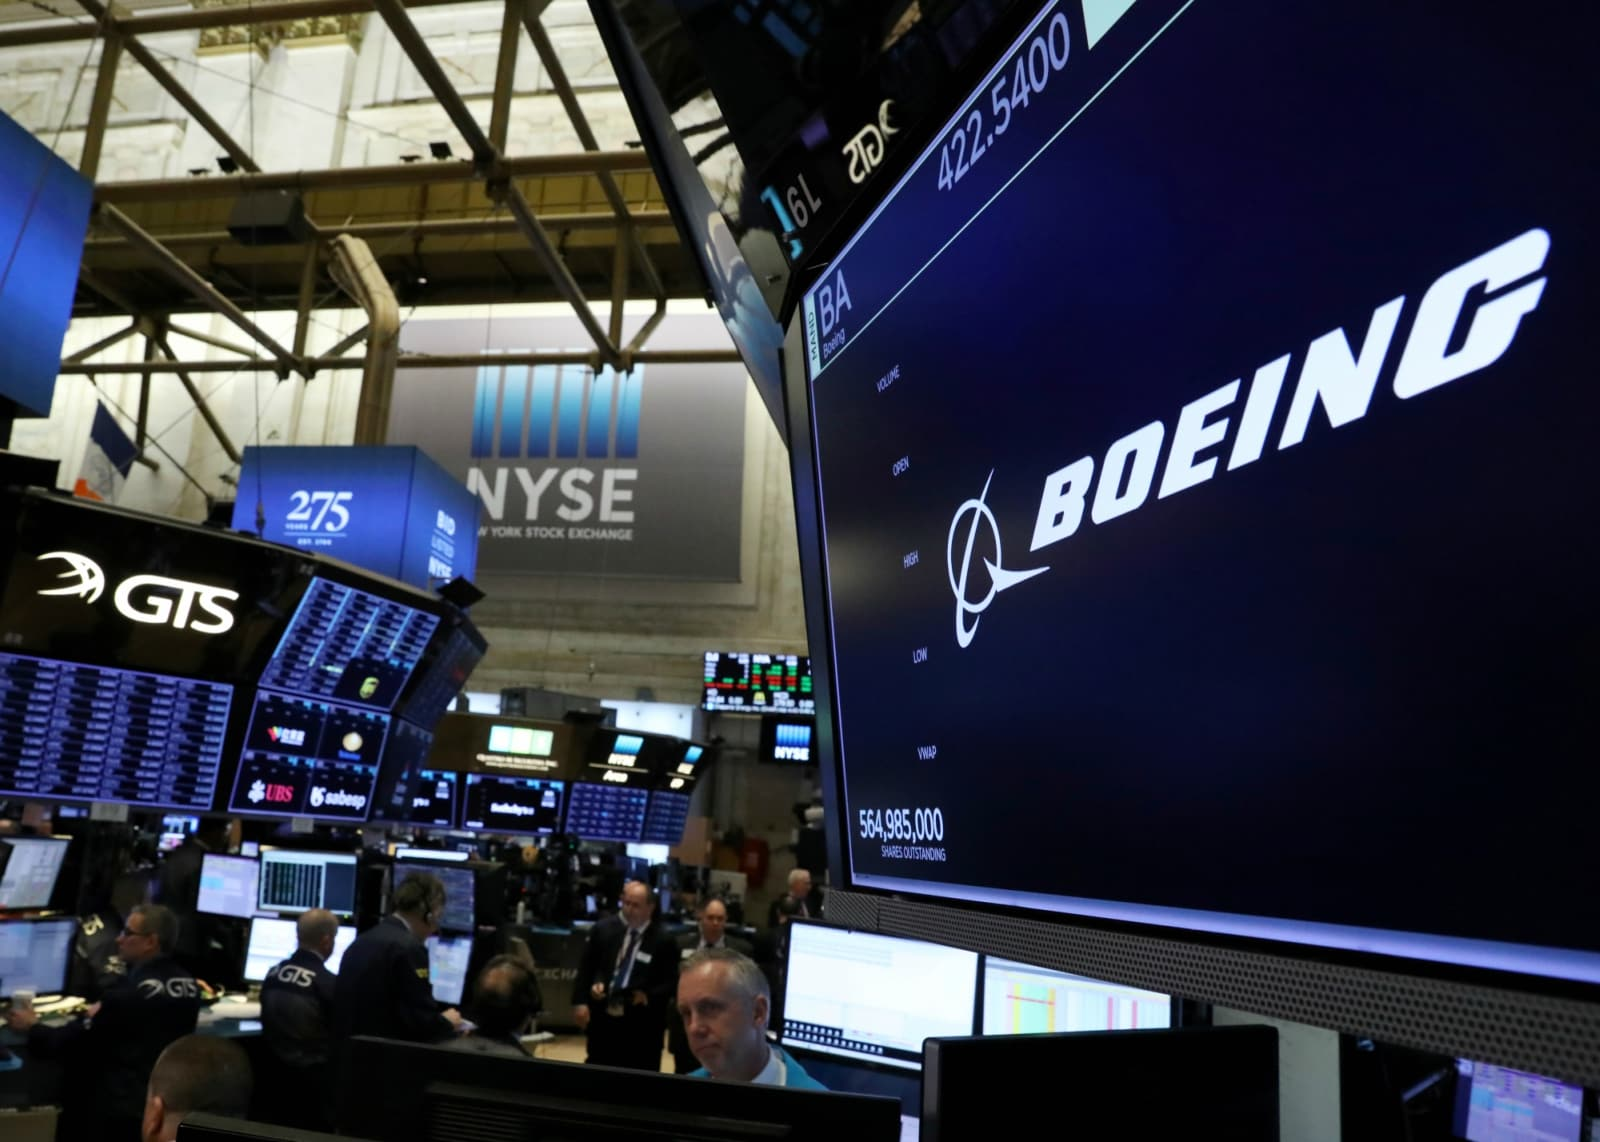 2. US: Wall Street's major indexes ended Friday's shorter session lower as US-China discord over Hong Kong fuelled investor anxiety about trade talks and retail stocks dipped as in-store Black Friday sales appeared to draw smaller crowds. The Dow Jones Industrial Average fell 112.59 points, or 0.4 percent, to 28,051.41, the S&P 500 lost 12.65 points, or 0.40 percent, to 3,140.98 and the Nasdaq Composite dropped 39.70 points, or 0.46 percent, to 8,665.47. (Image: AP)